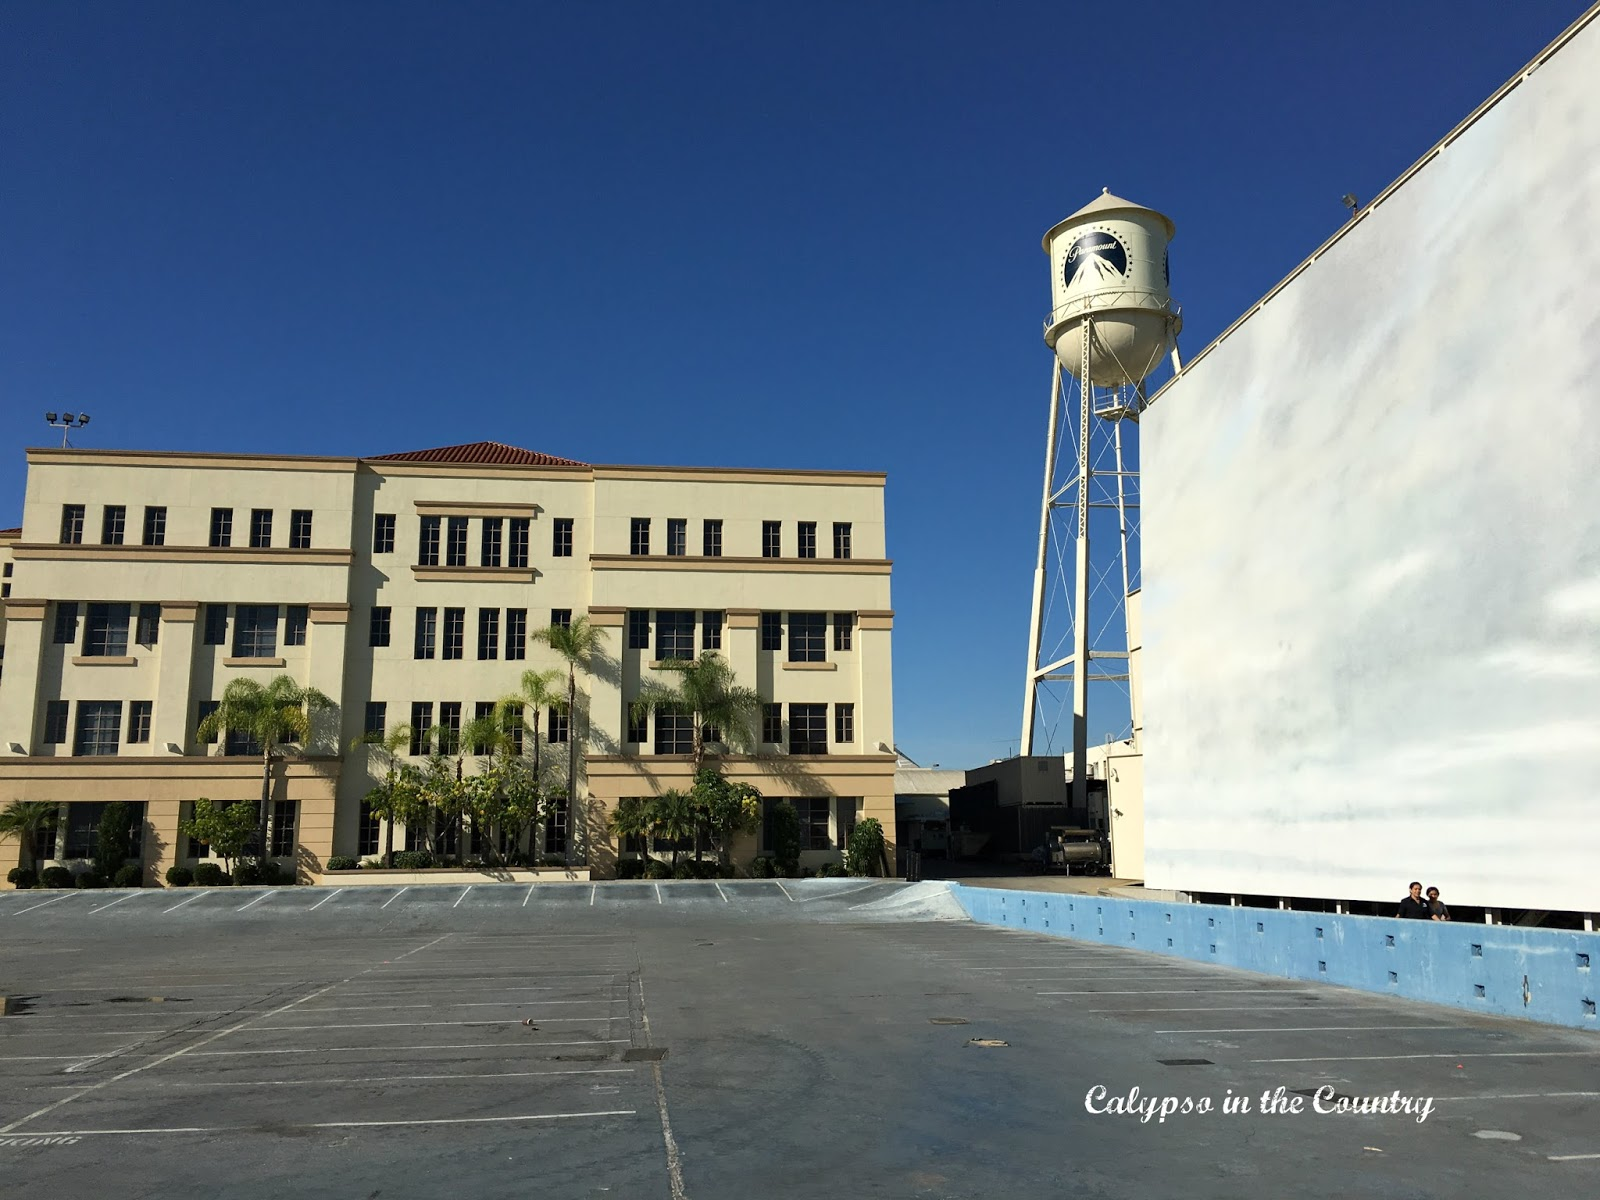 Parking Lot used for ocean scenes at Paramount Studios